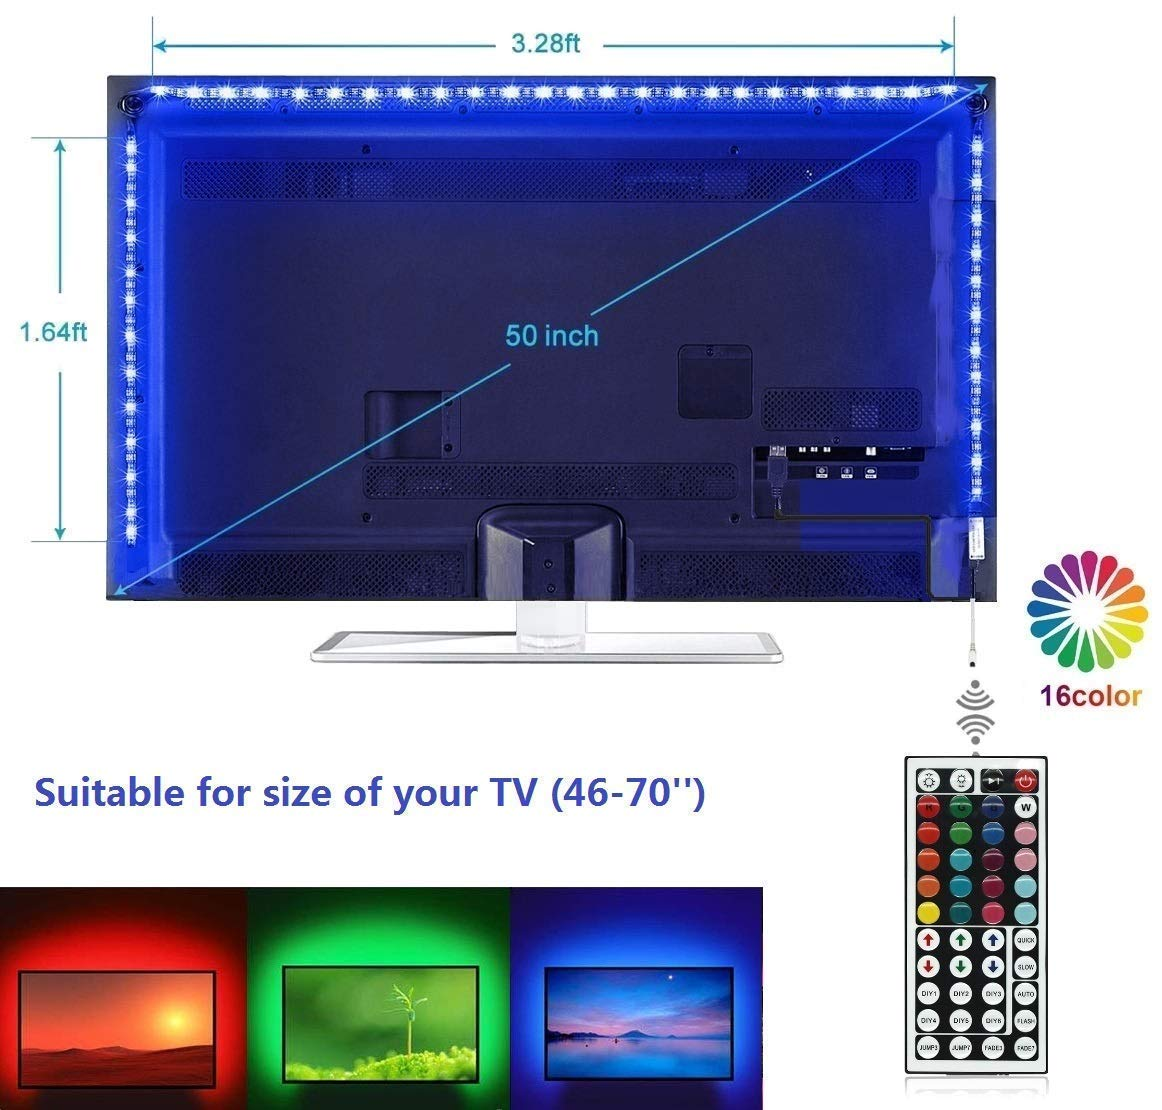 Topled Light LED TV Backlight, USB LED Strip Light ith 44Keys Remote Controller, Extra Adhesive 3M Tape, Flexible Changing Multi-Color Lighting Strips for TV/Room/Party/Home Decoration (40''-60'')